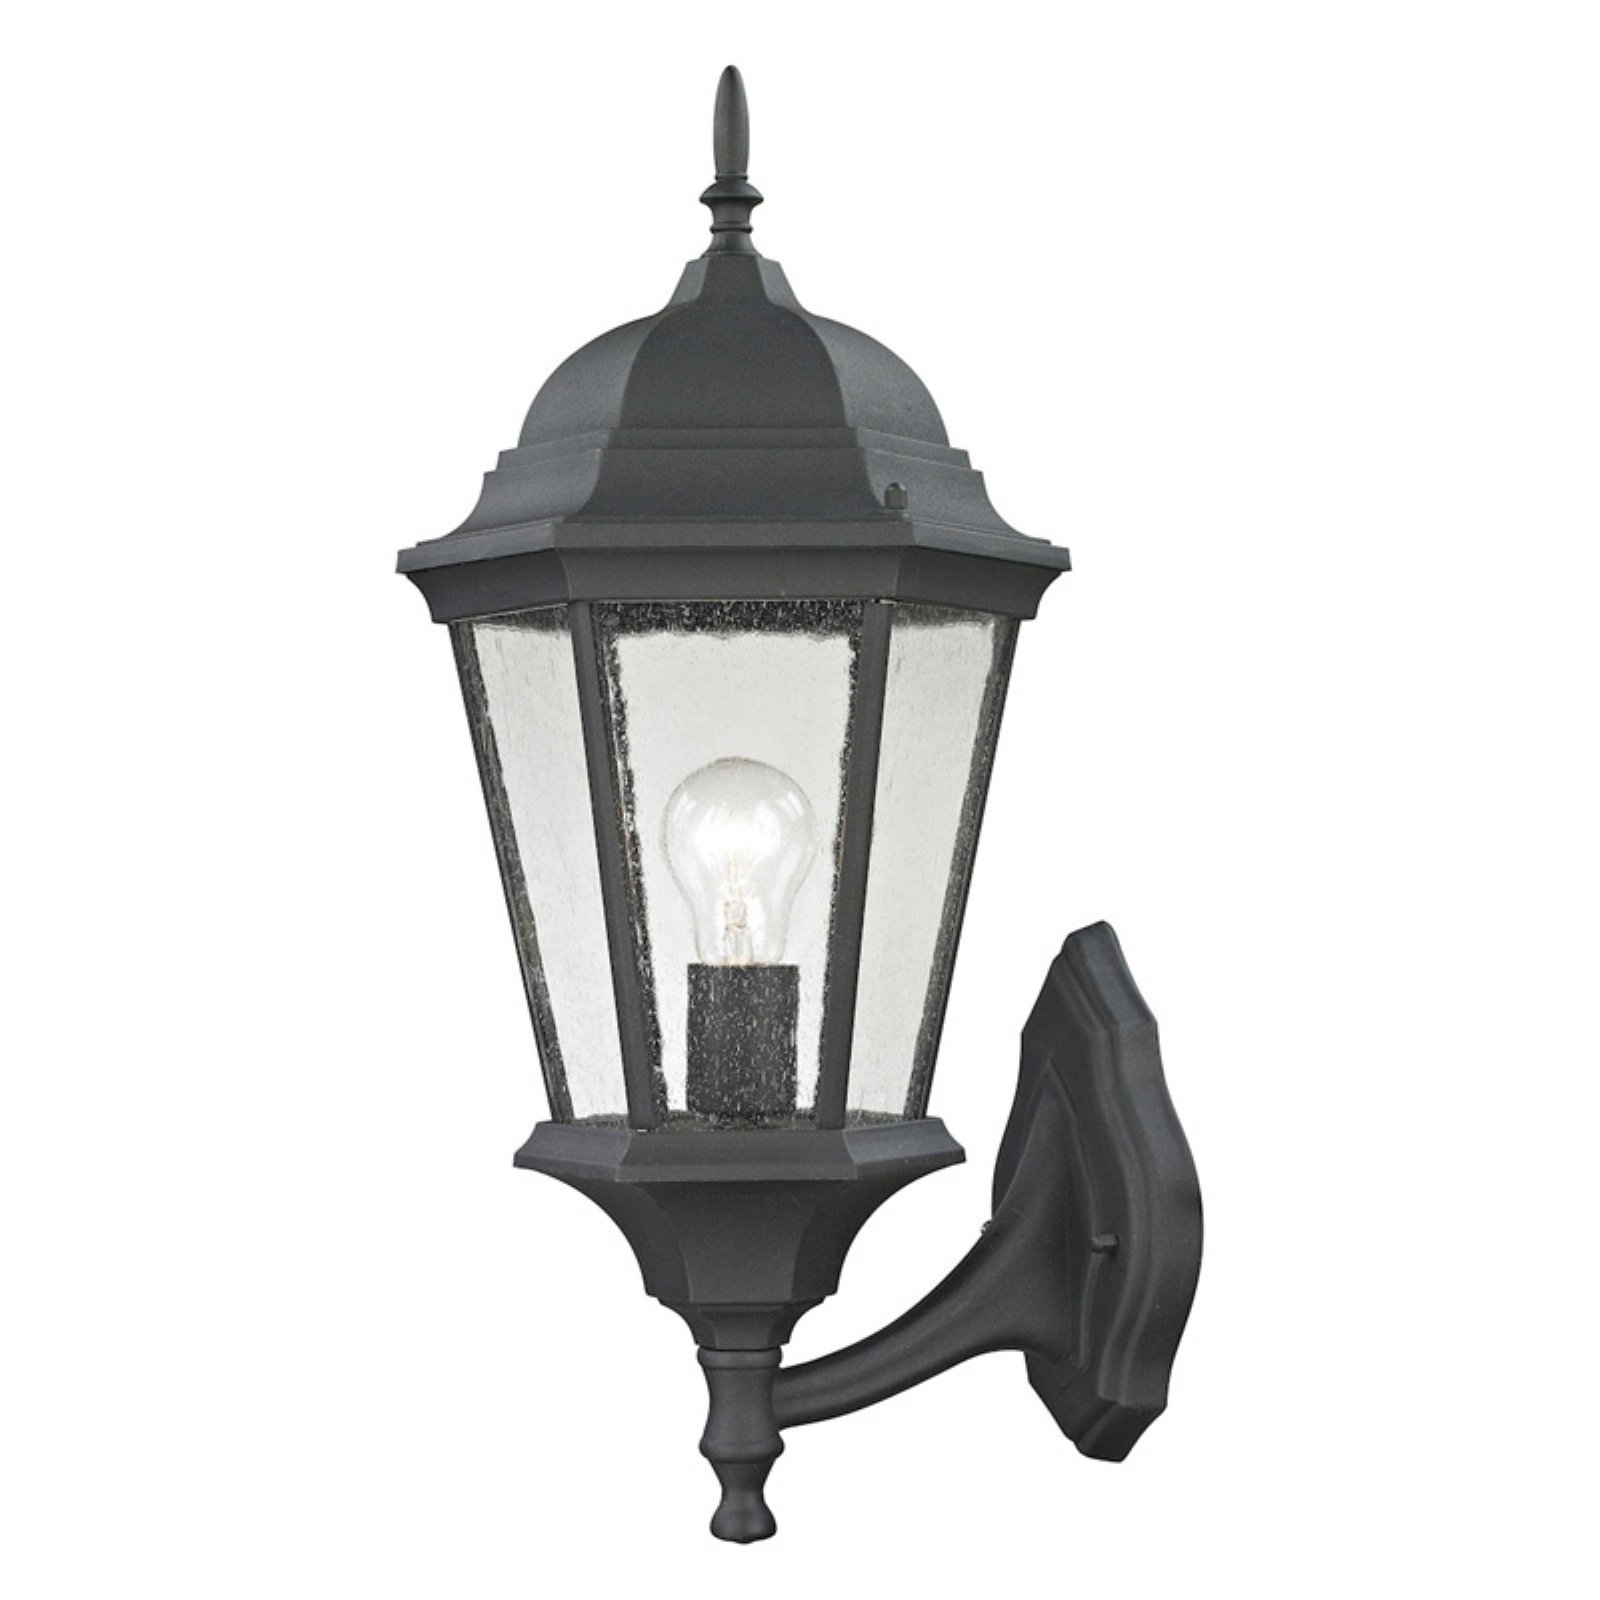 Thomas Lighting Temple Hill 8111 Outdoor Wall Sconce by CornerStone